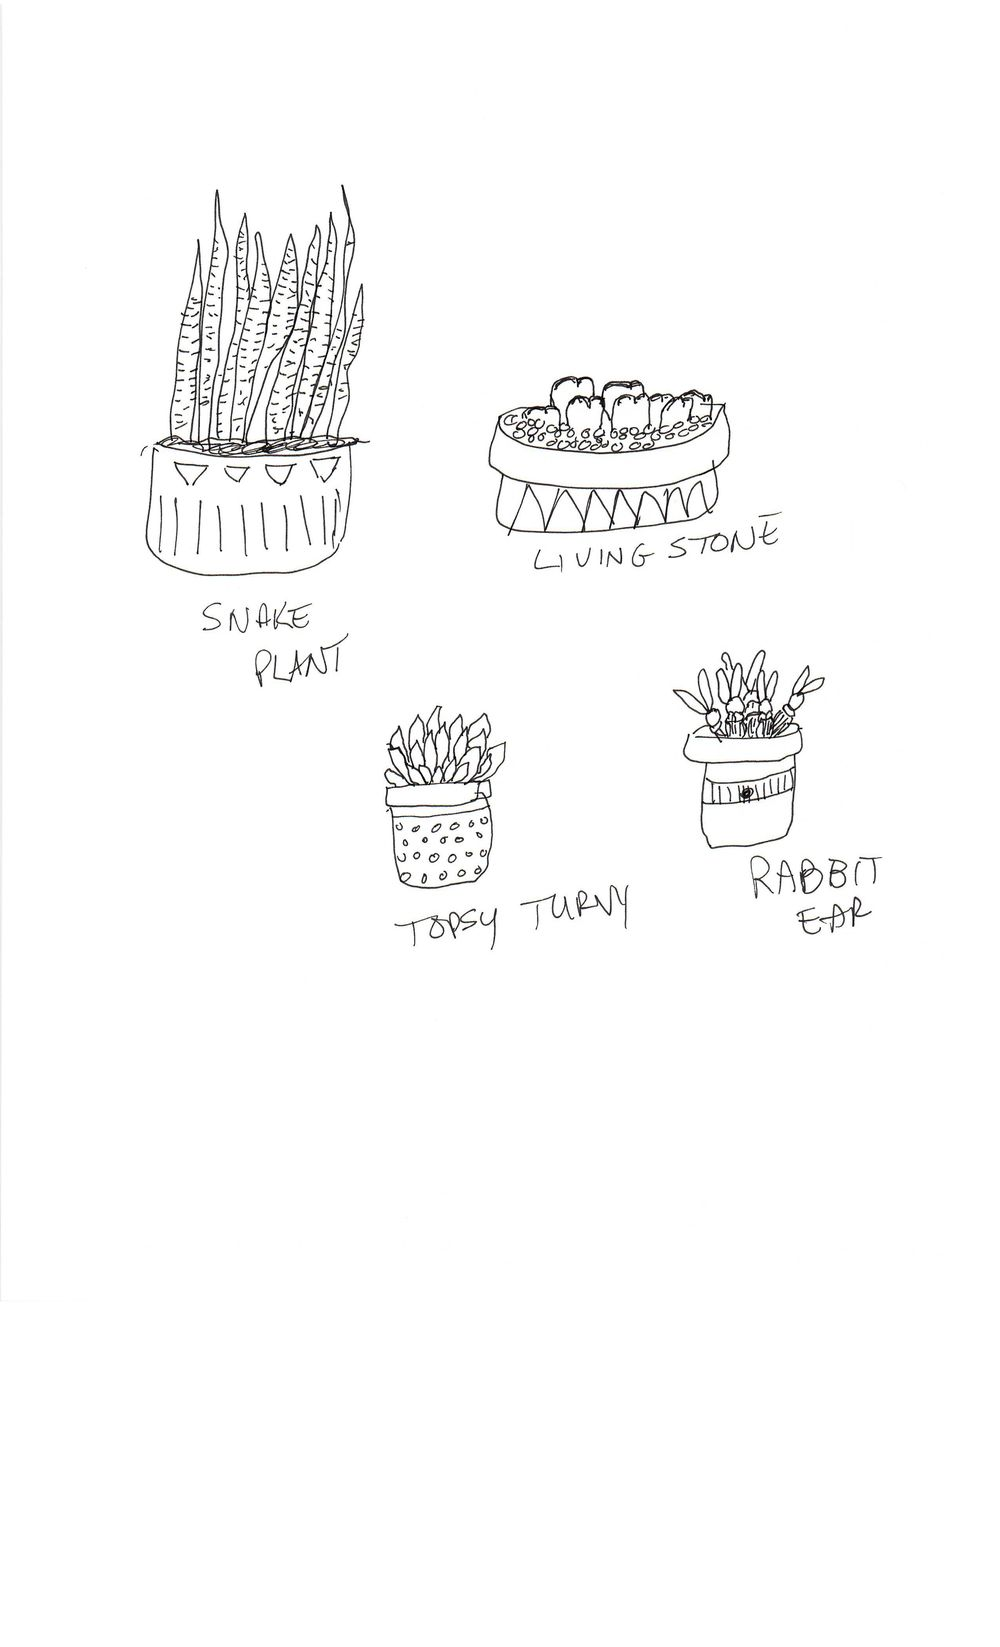 Practice Practice Practice Cactus cactus cactus. - image 2 - student project